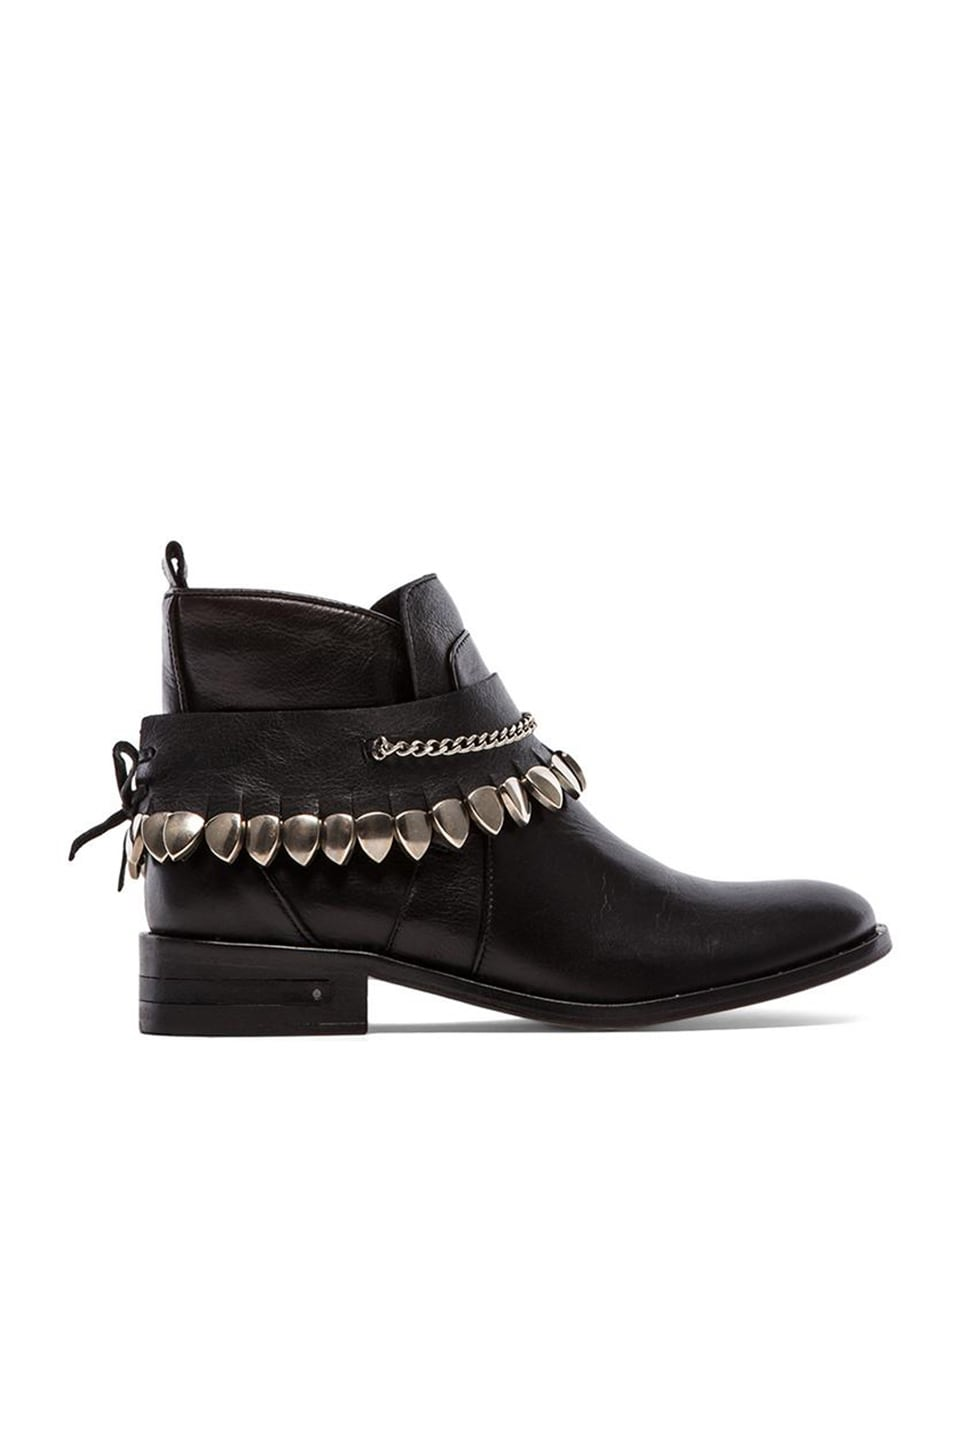 Freda Salvador Star Boot in Black